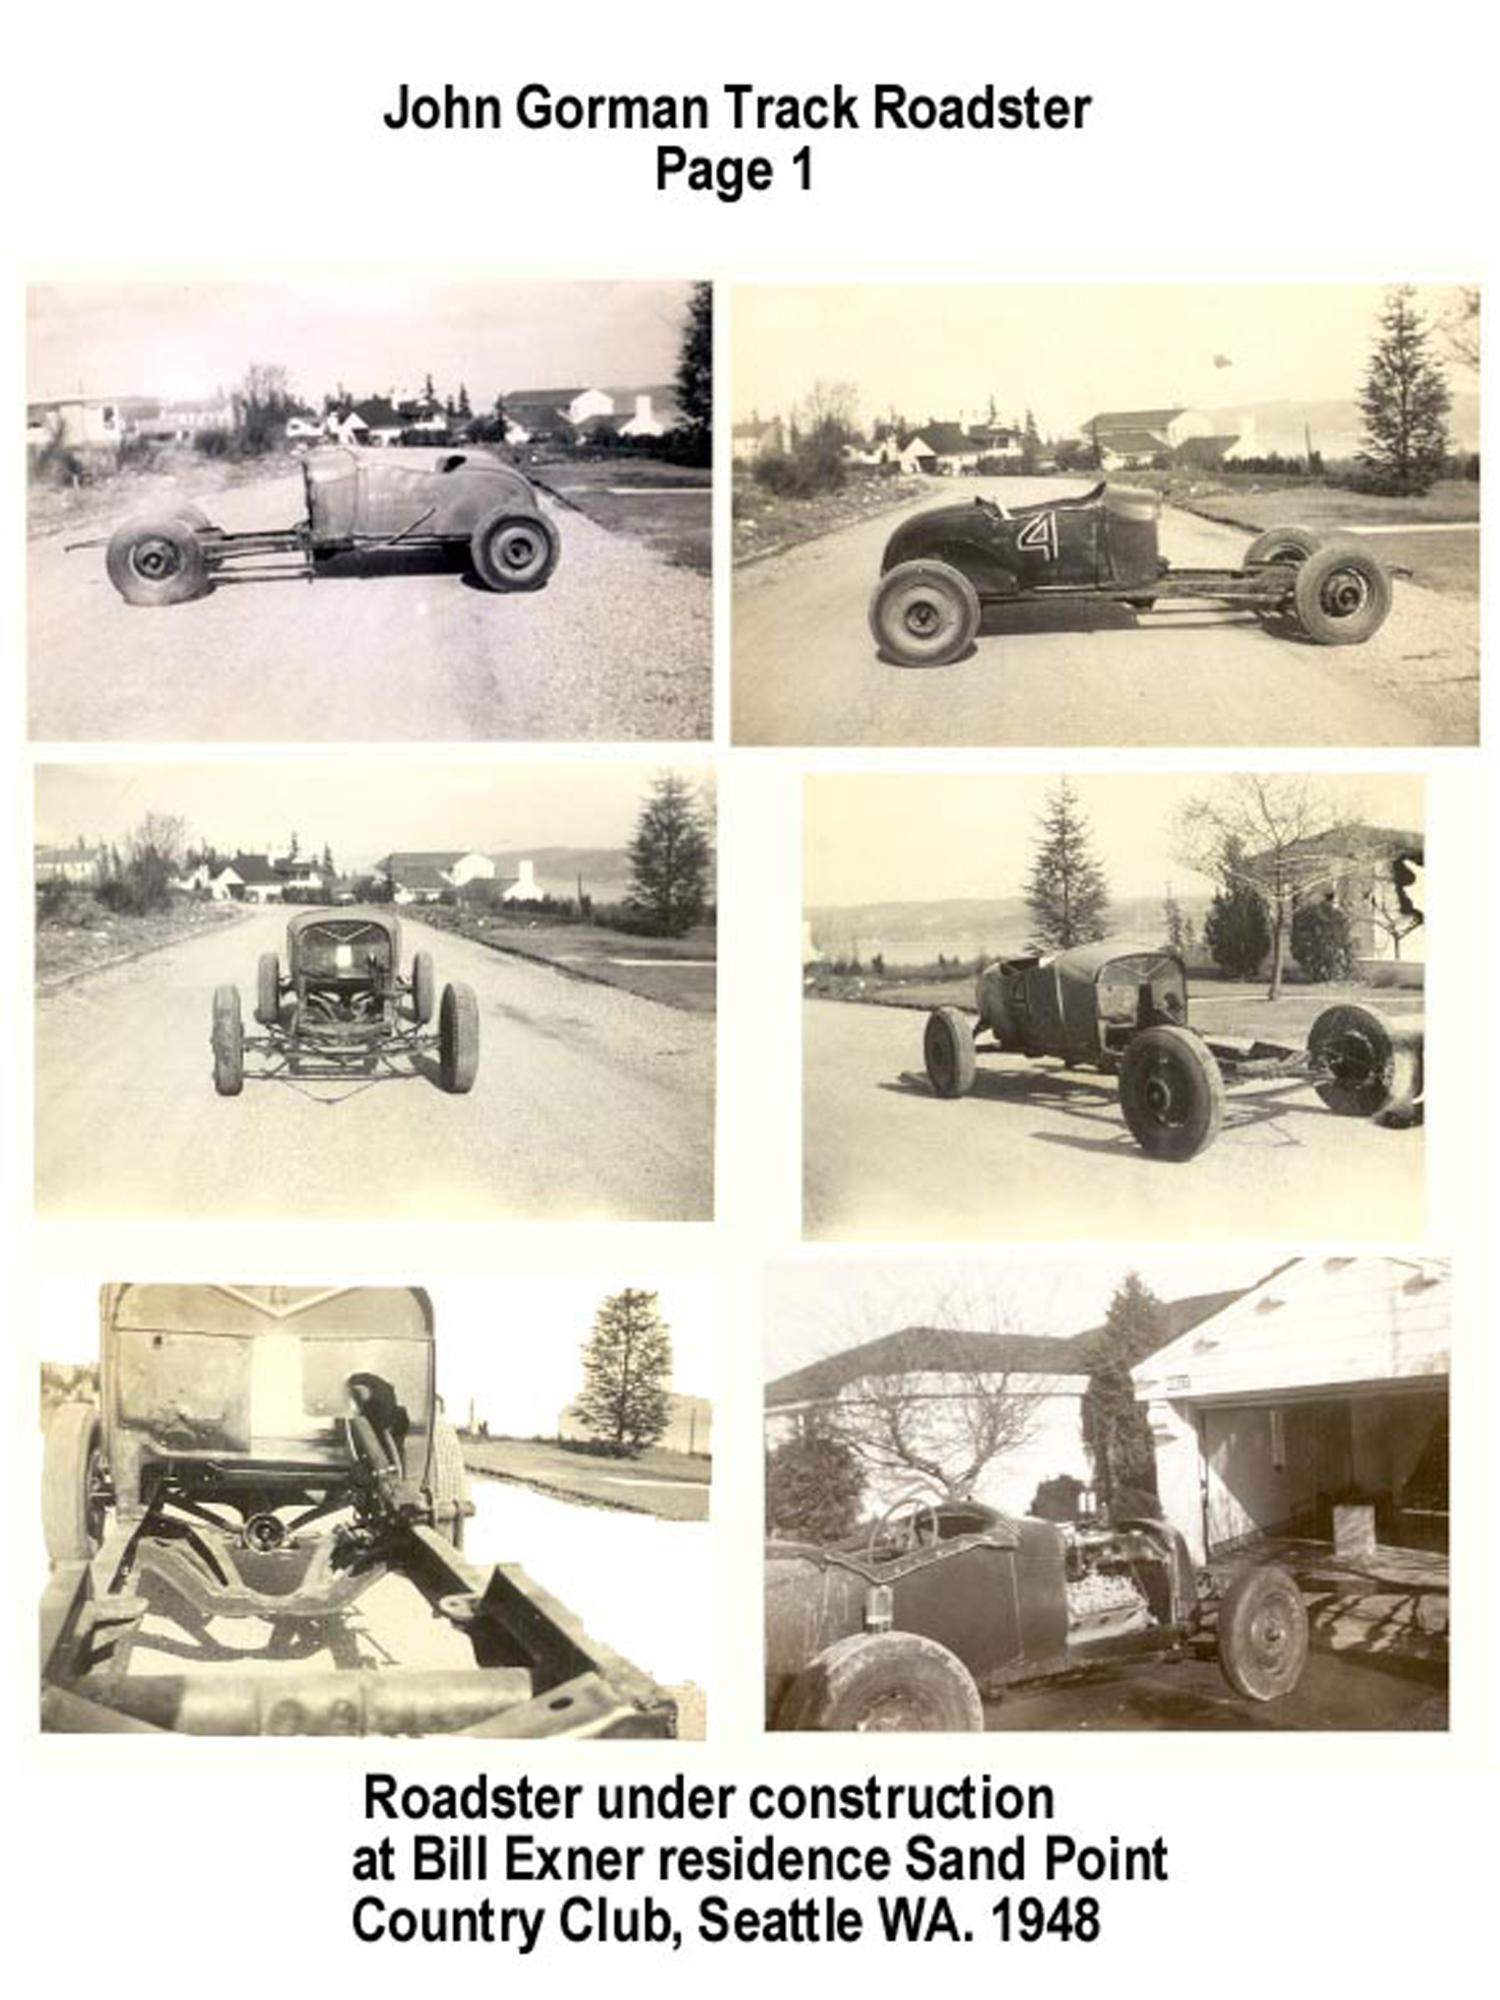 TRA_The_making_of_a_track_roadster_1948_Seattle_Pg_1_HR.jpg